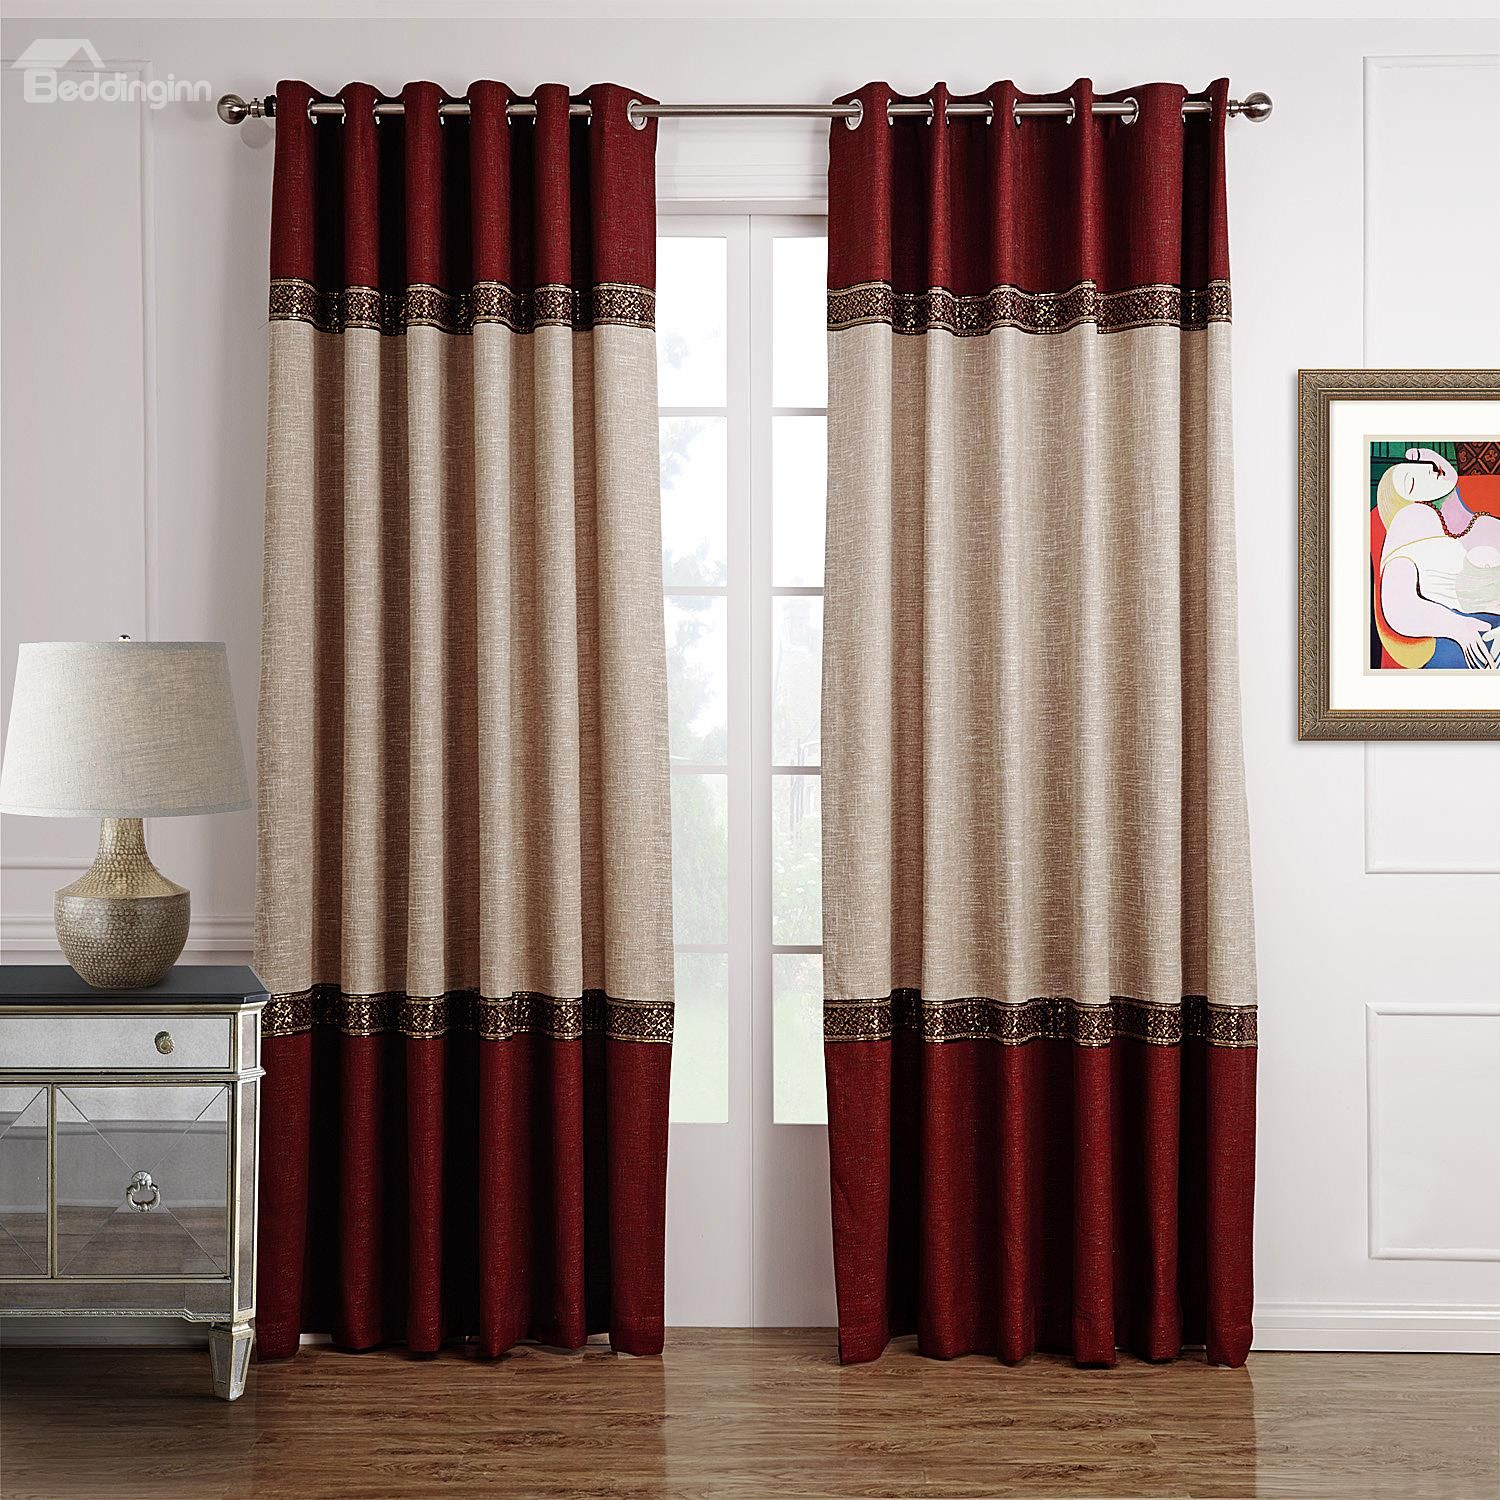 Hot Selling Fantastic Joint Color Decorative Border Design Custom Curtain Curtains Living Room Curtain Decor Red Curtains